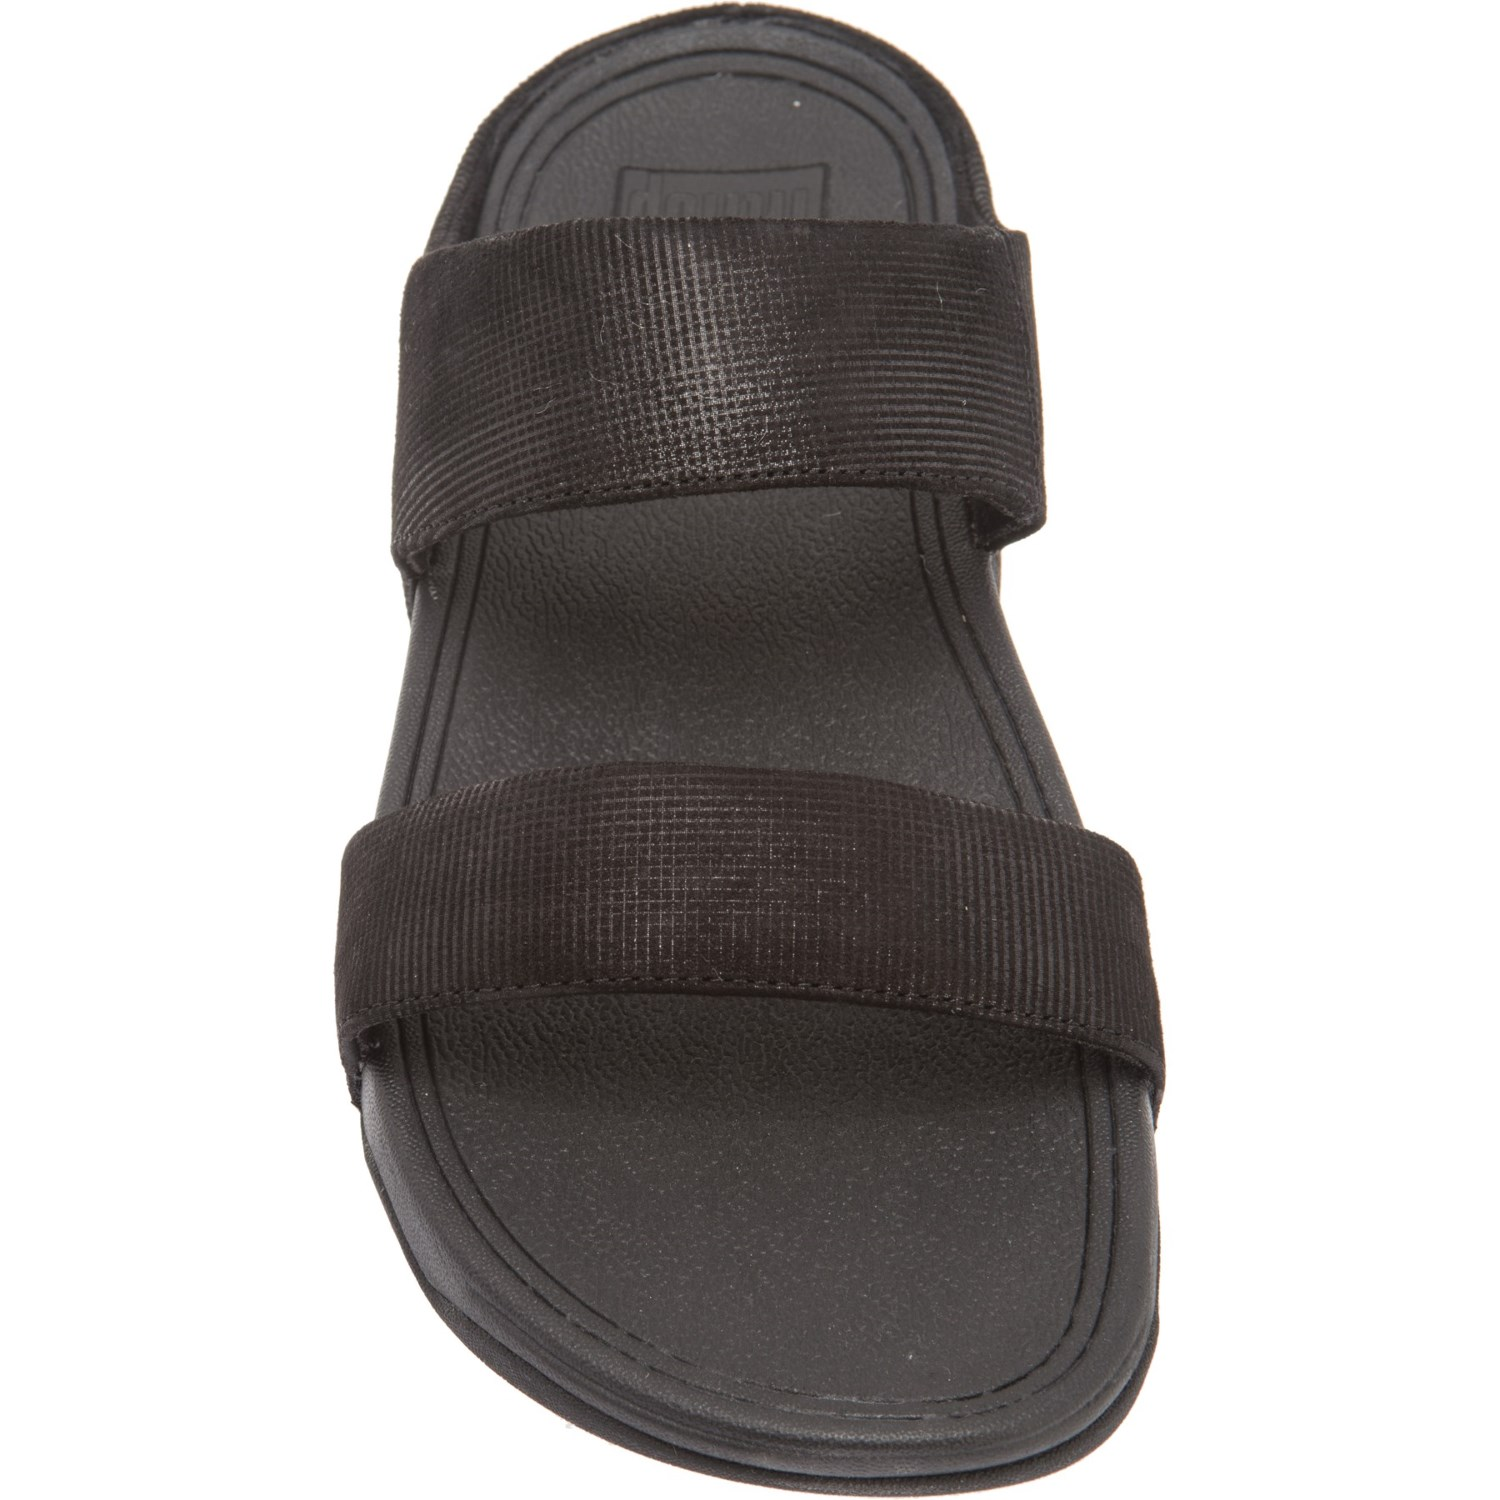 dbd651ce1 FitFlop Lulu Shimmer Check Slide Sandals (For Women) - Save 32%